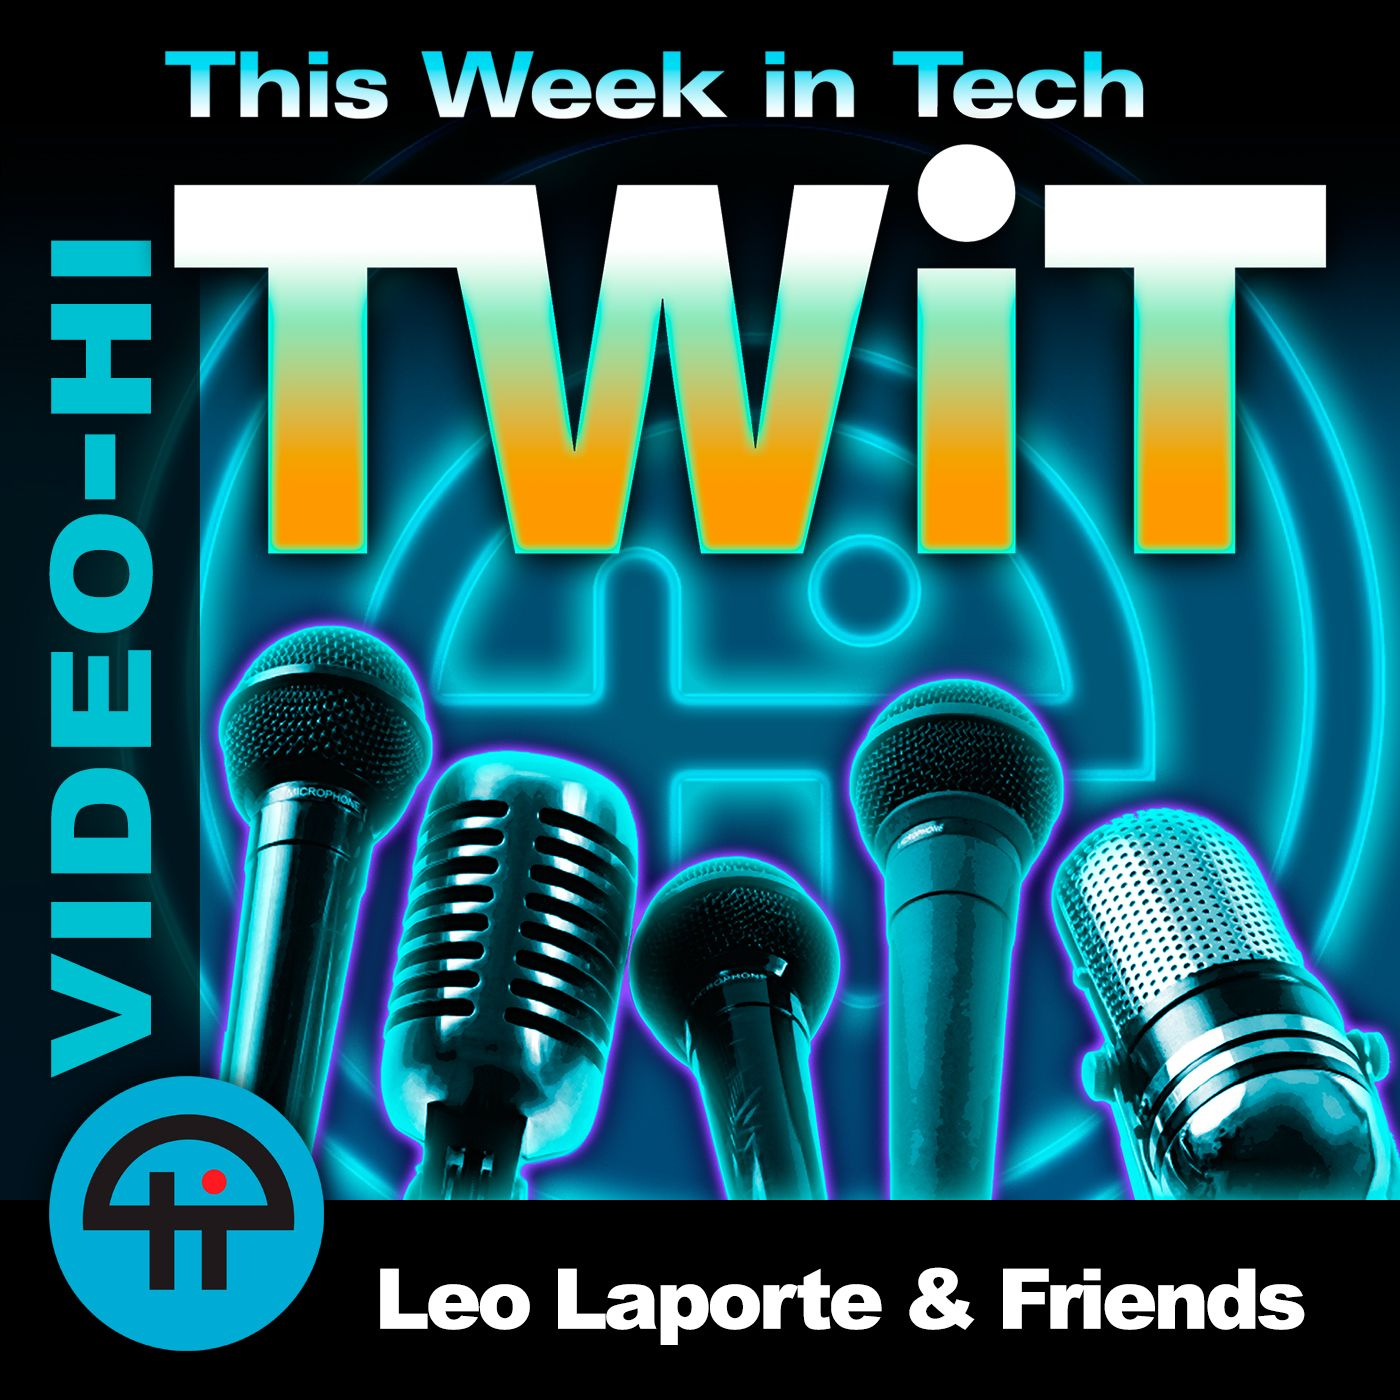 This Week in Tech (Video-HI)